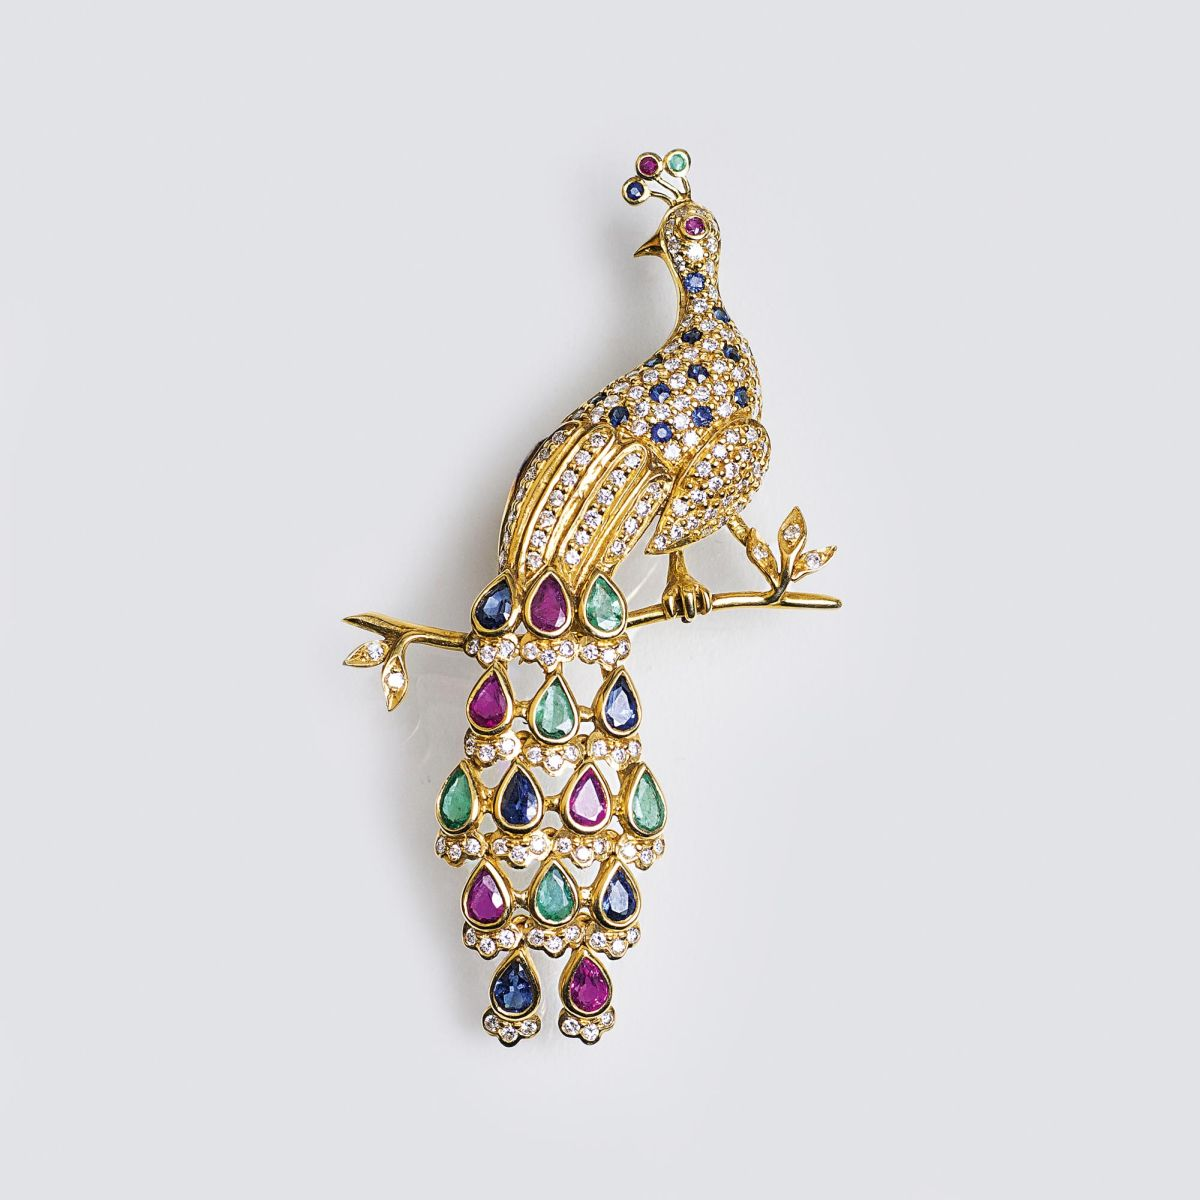 A Vintage Brooch with Diamonds and Coloured Gemstones